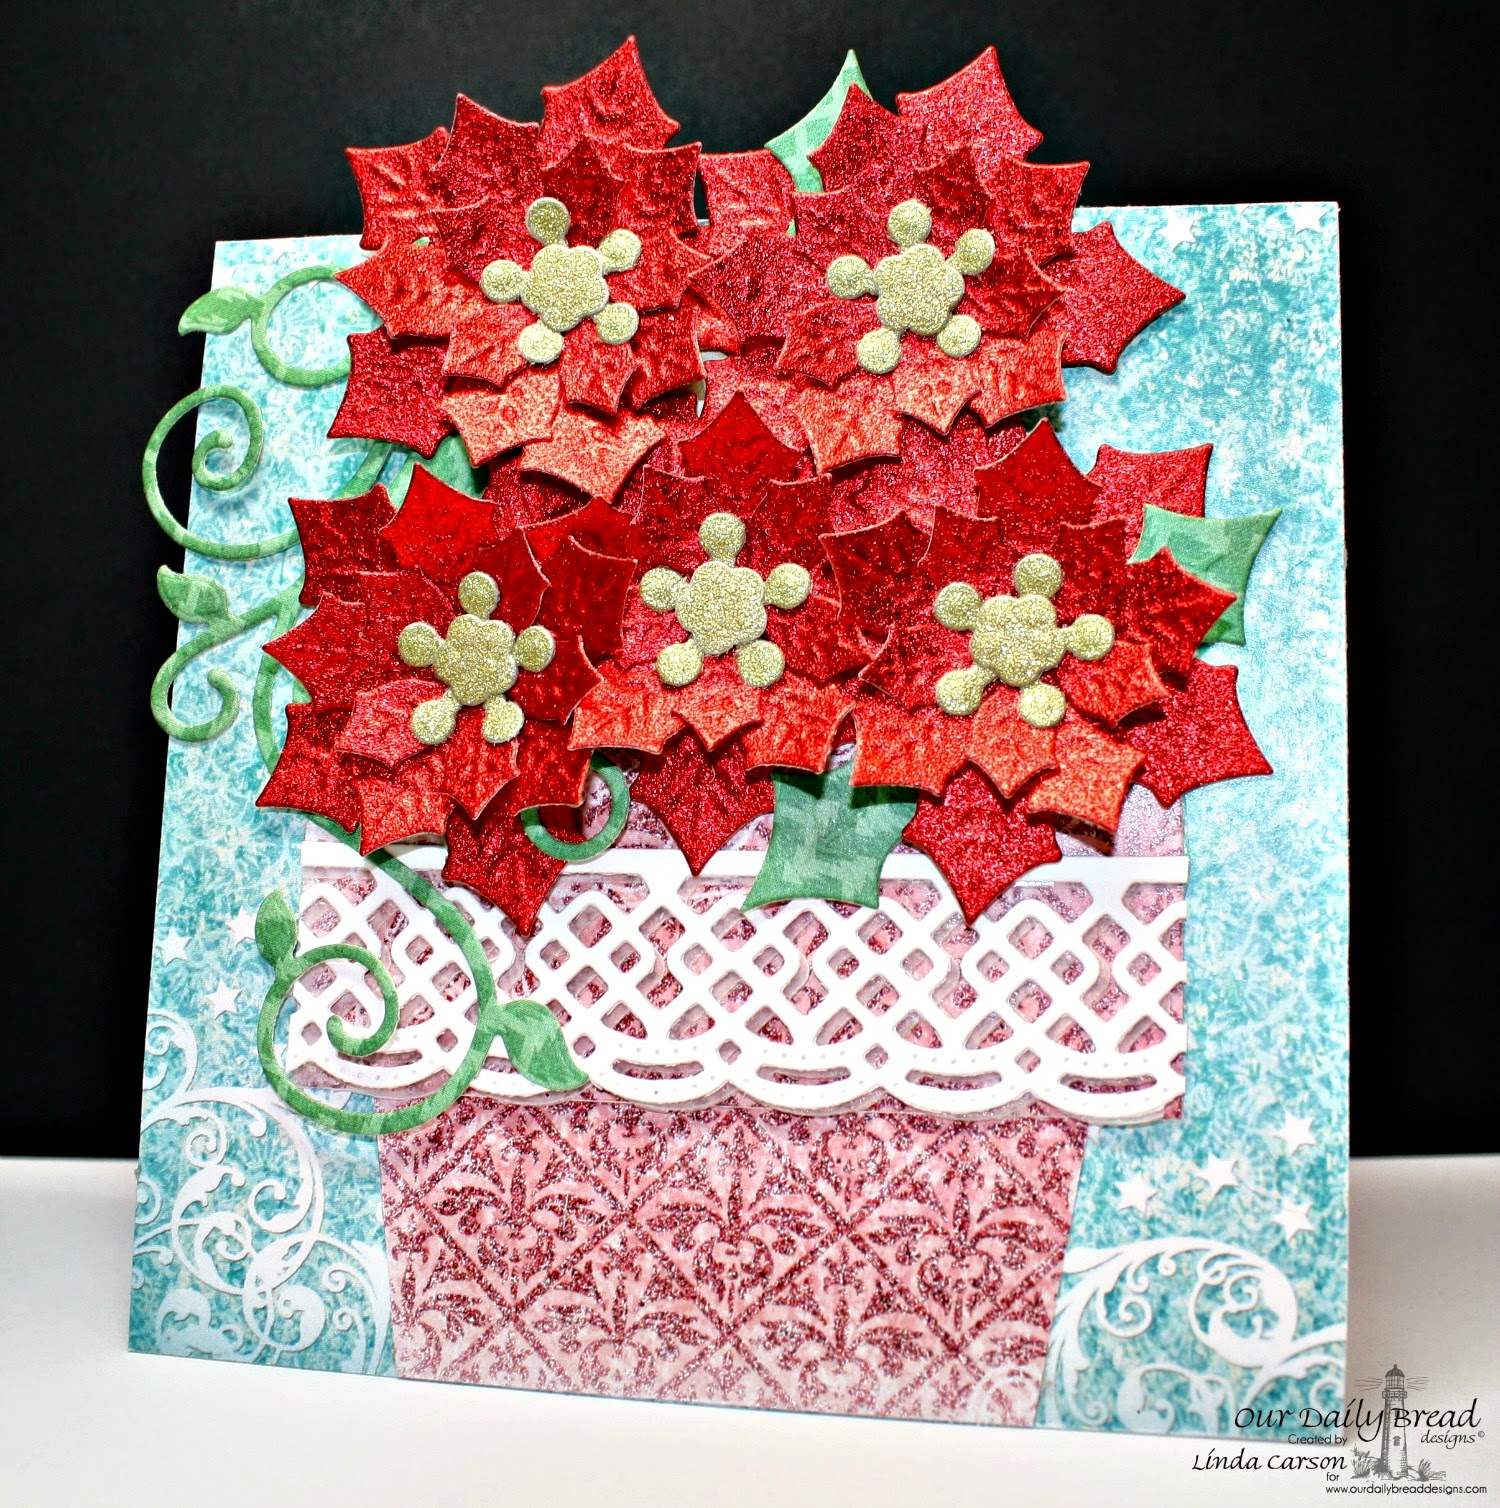 ODBD, Holly Wreath, Circle Ornaments die, Peaceful Poinsettia die, Beautiful Borders die, Fancy Foliage die, Christmas Collection 2015, Fancy Folds Flower Pot, designer Linda Carson